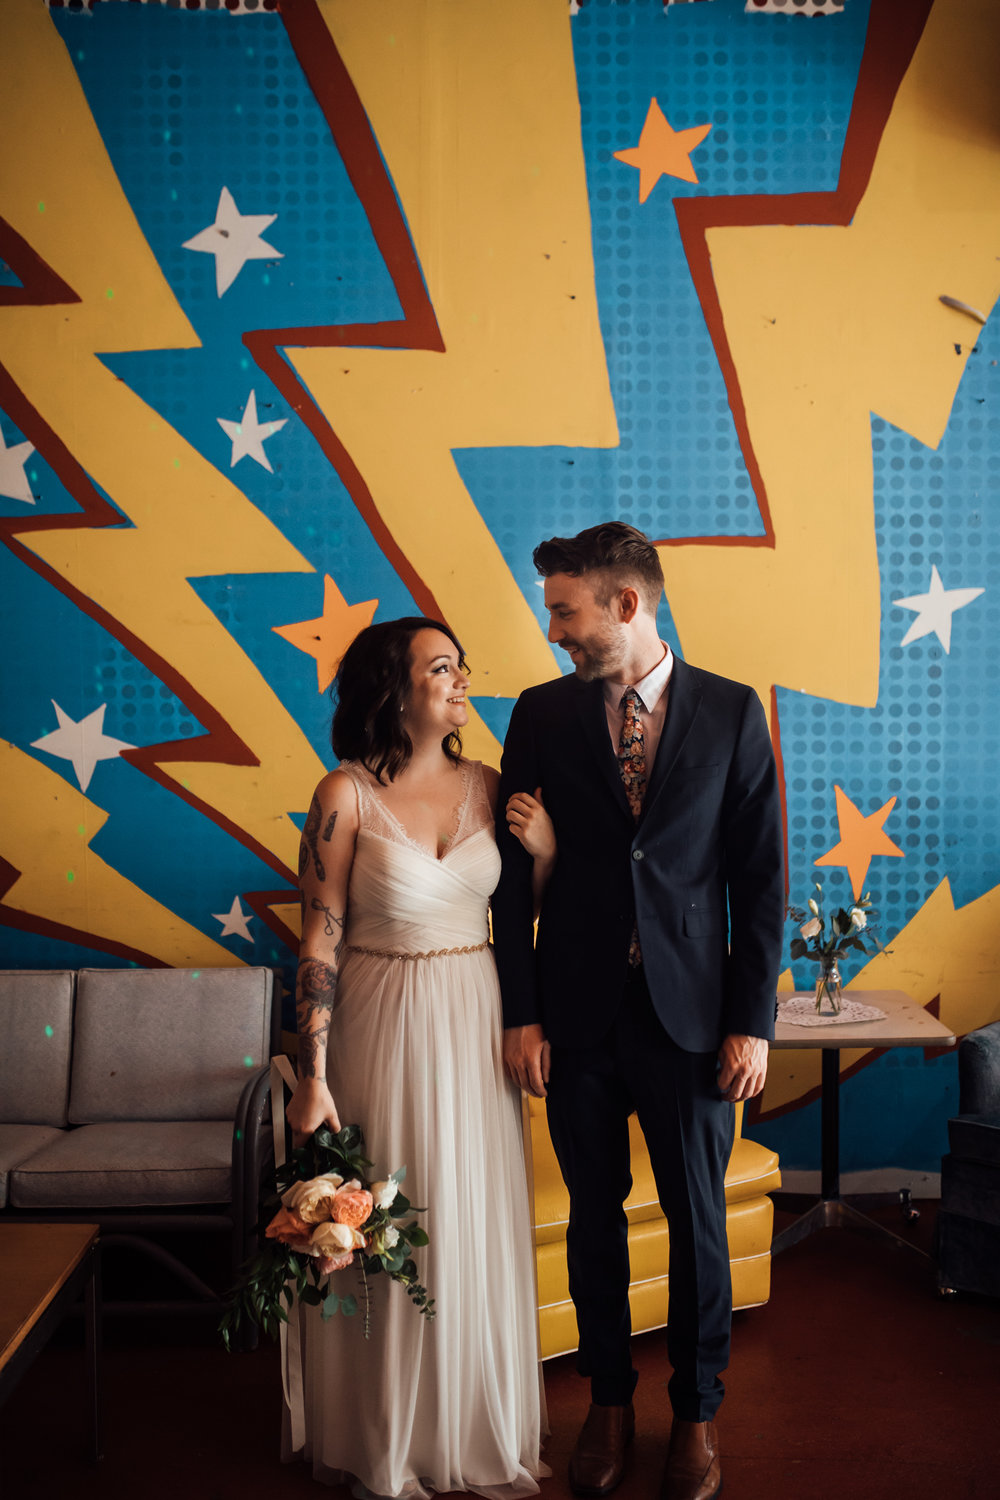 thewarmtharoundyou-amurica-studio-wedding-colorful-unique-wedding (25 of 47).jpg